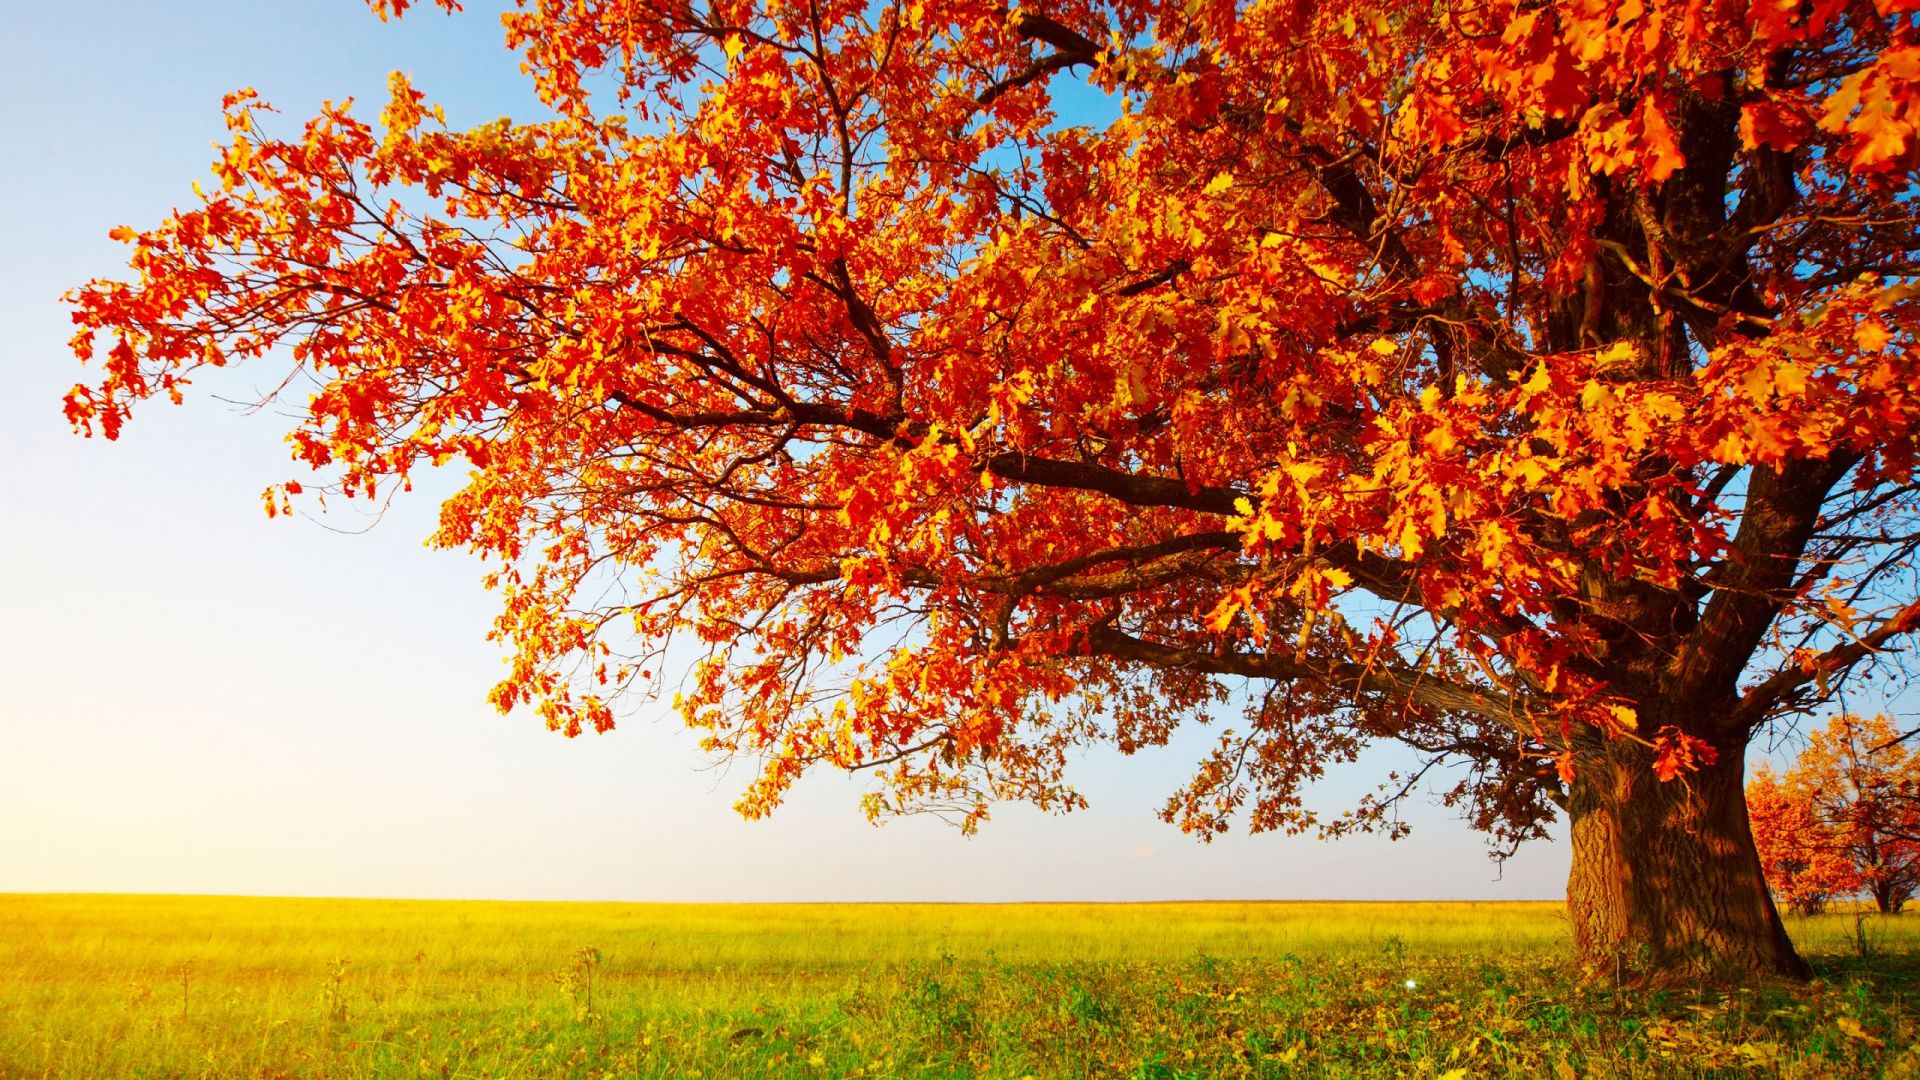 fall, sky, nature, tree, leaves, blue, orange, calm, green, shadow ...